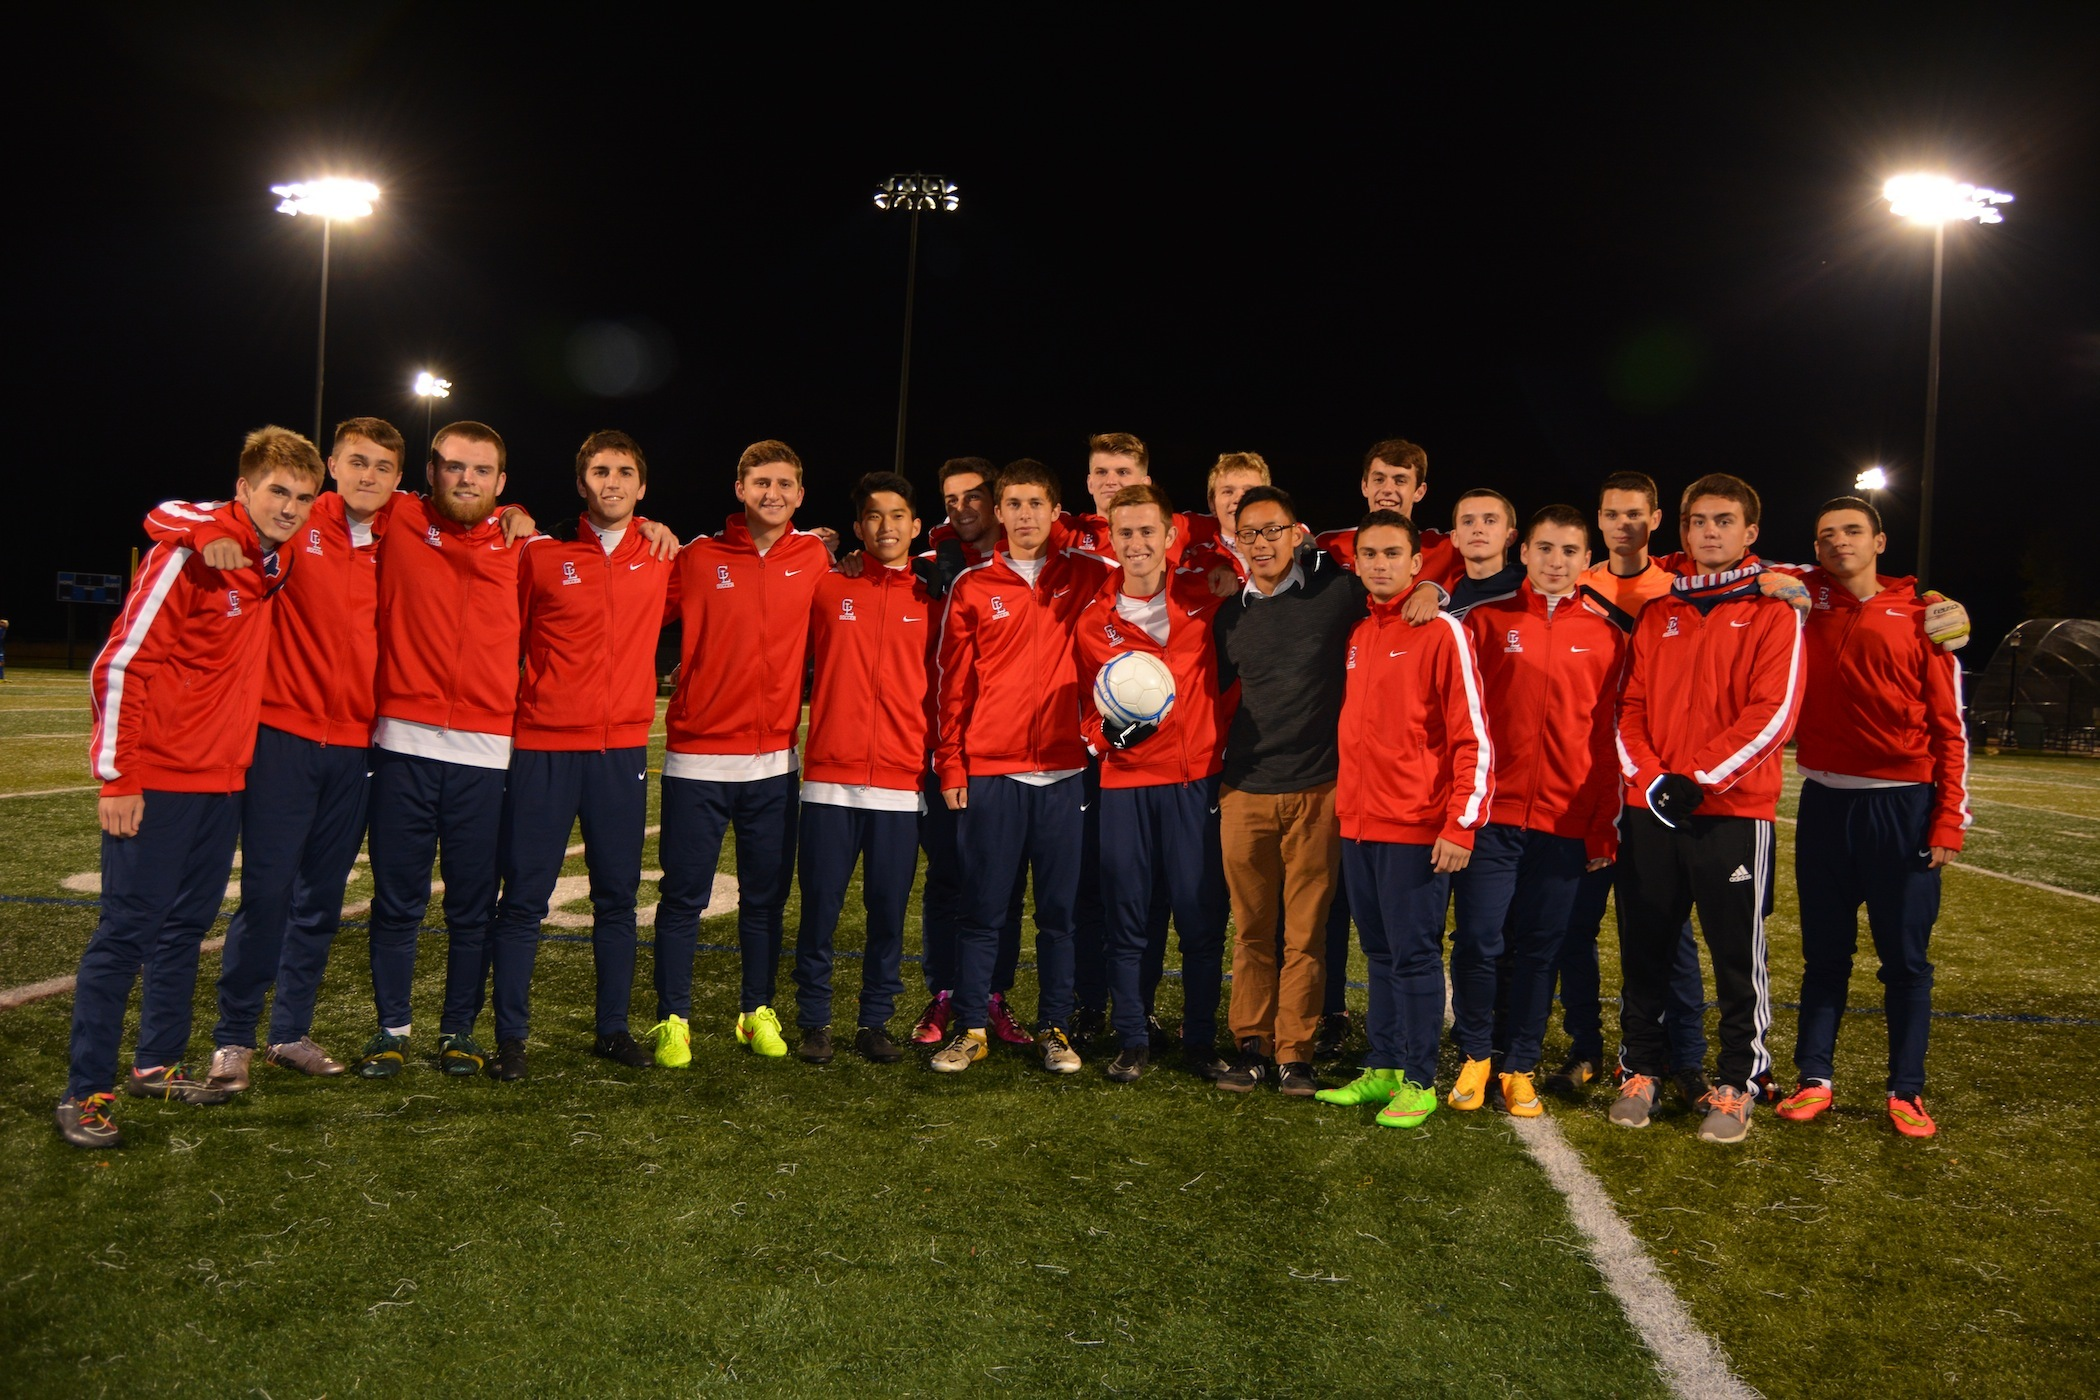 d6d2ebd0ba88c514dc32_2014_boys_varsity_senior_night_team_entire.jpg